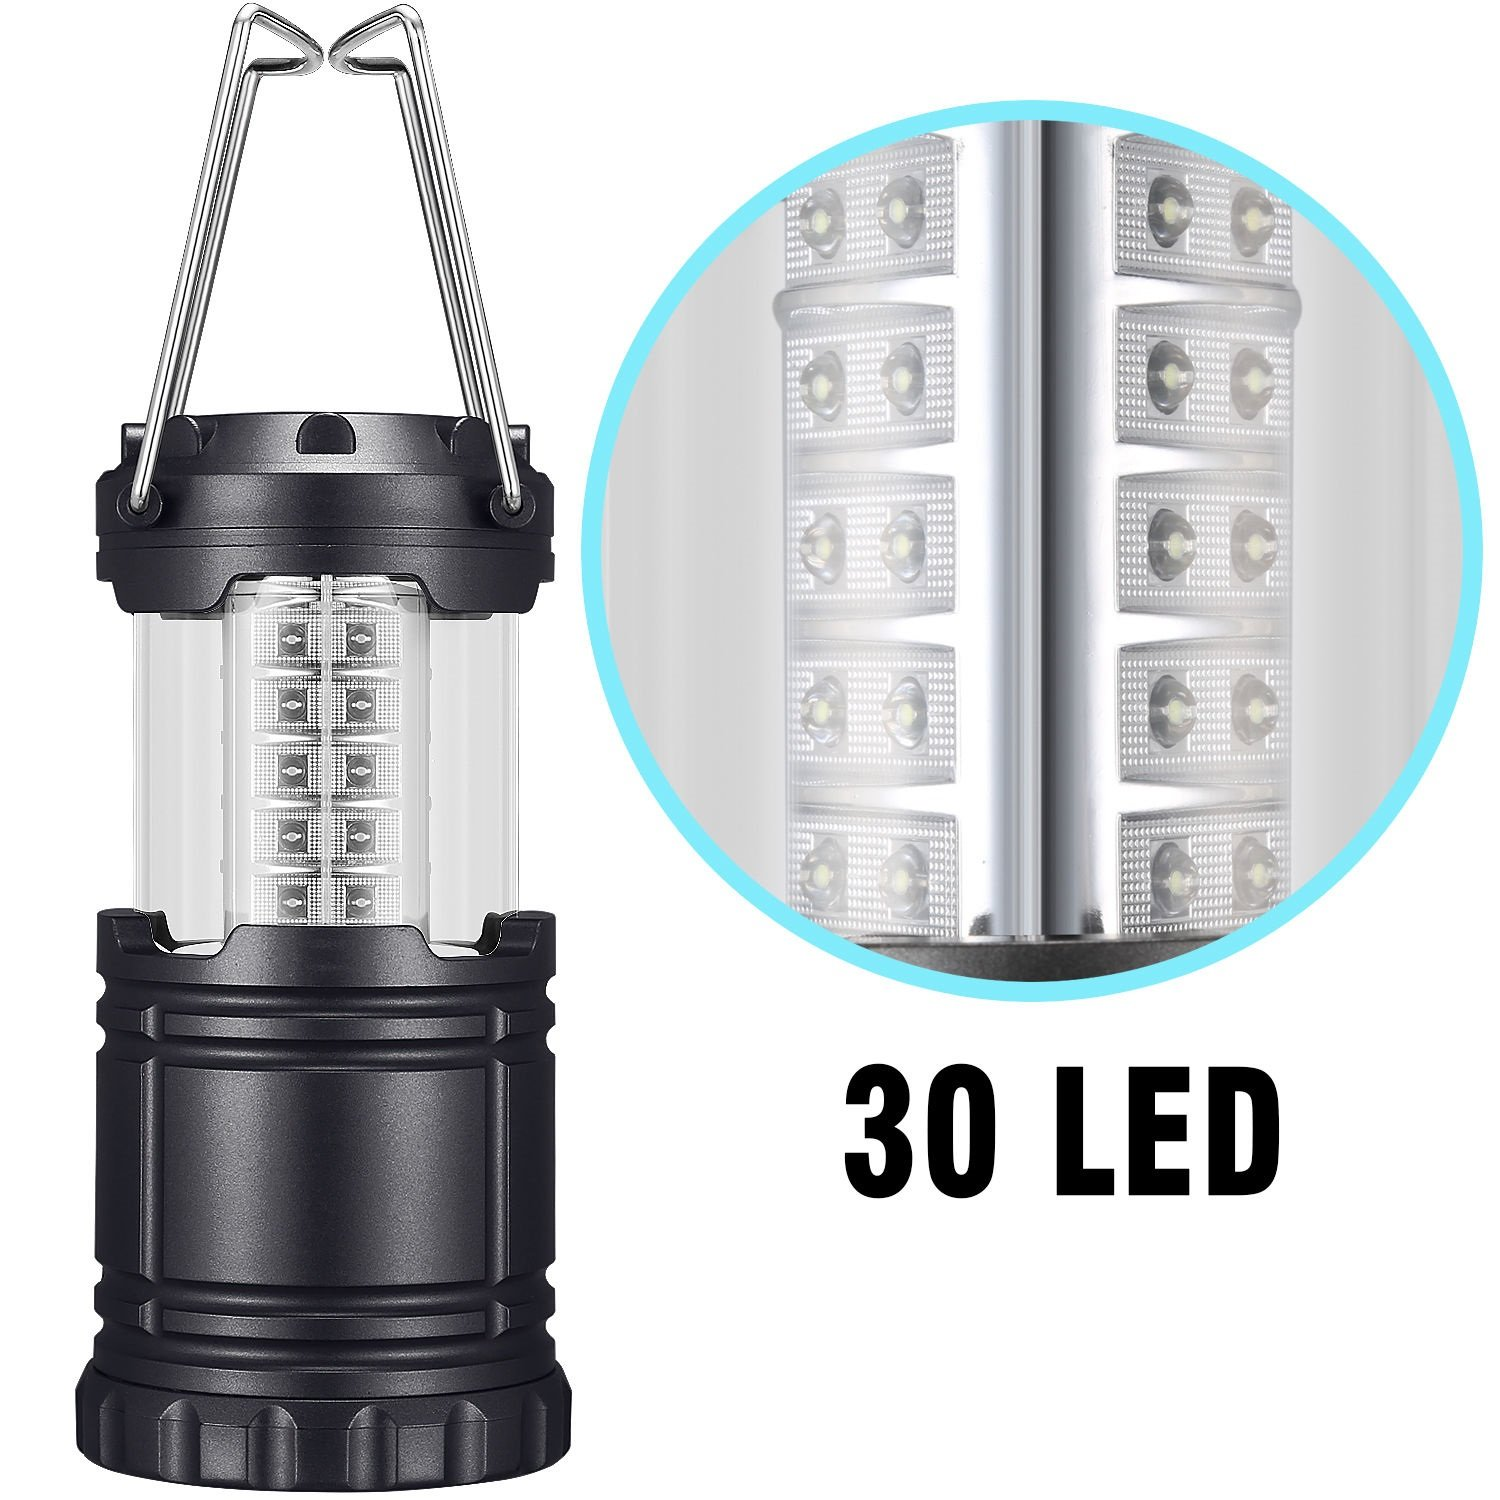 Begana Portable Camping Lantern Flashlights with 30 LED Bulbs - Restractable & Lightweight & Water Resistant Camping Light, Great for Hiking & Camping & Emergencies & Travel, Black by Begana (Image #1)